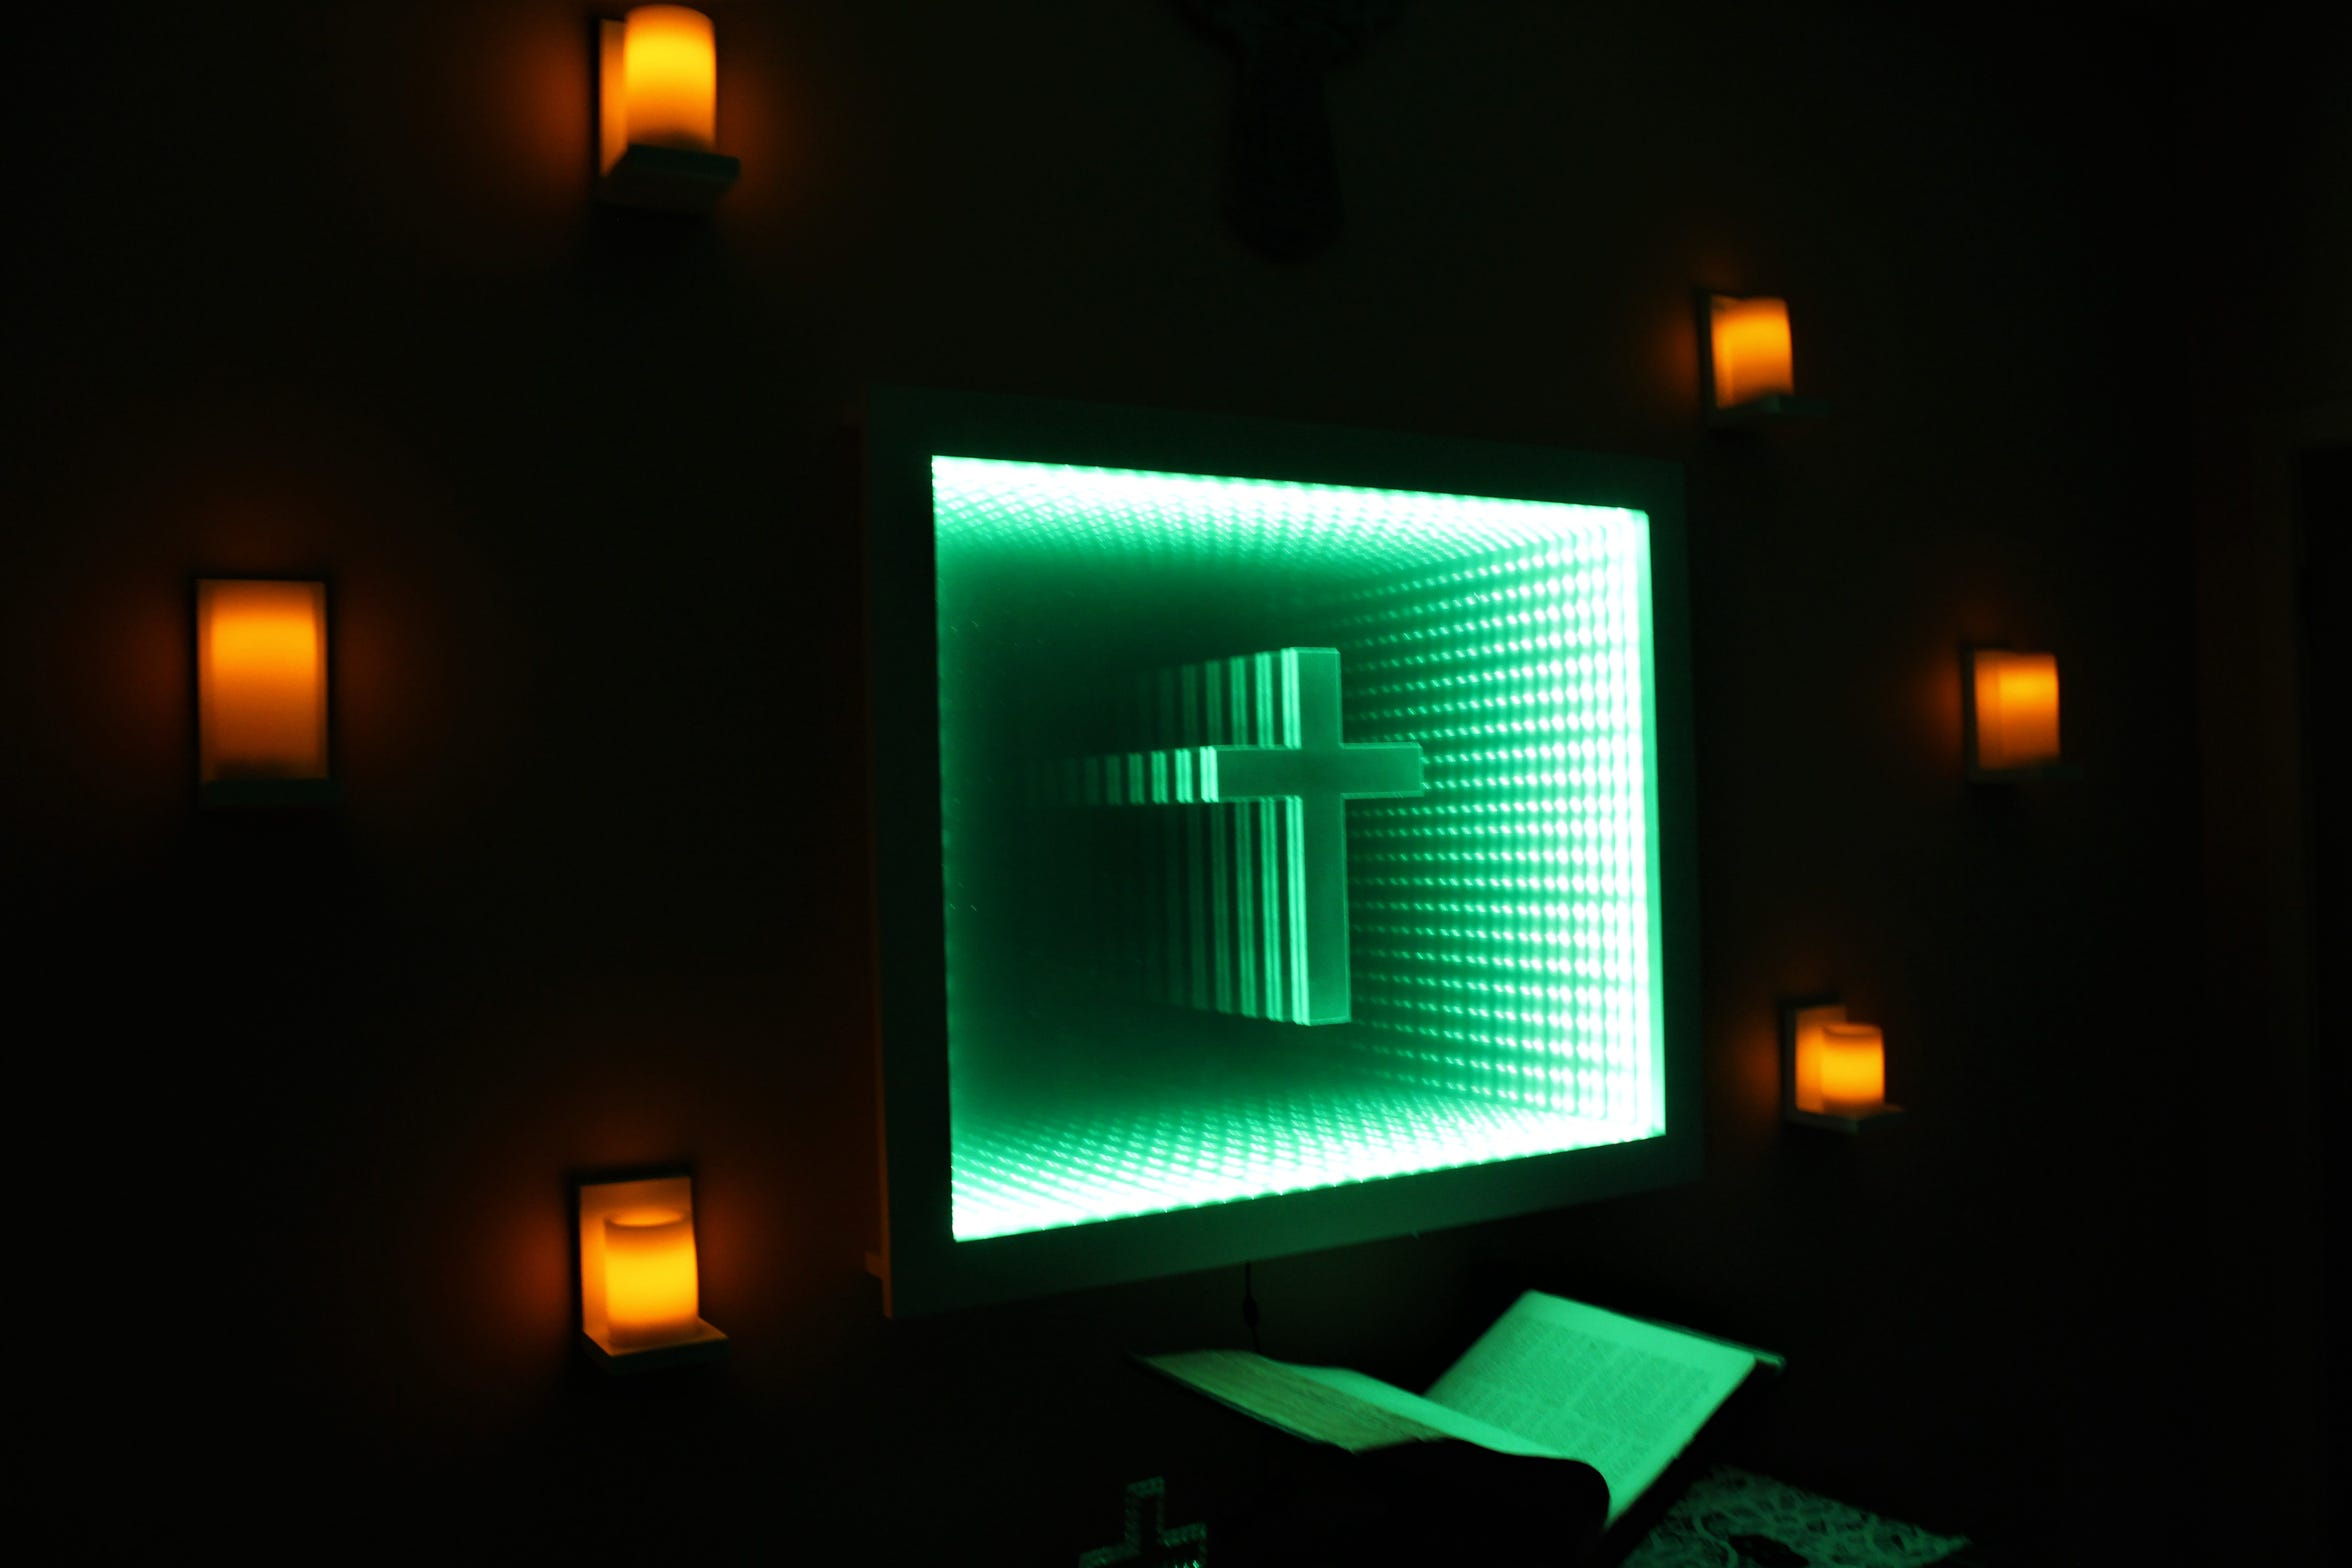 Six candles encircle the infinity cross mirror, with changing colors illuminating a Bible open below it.